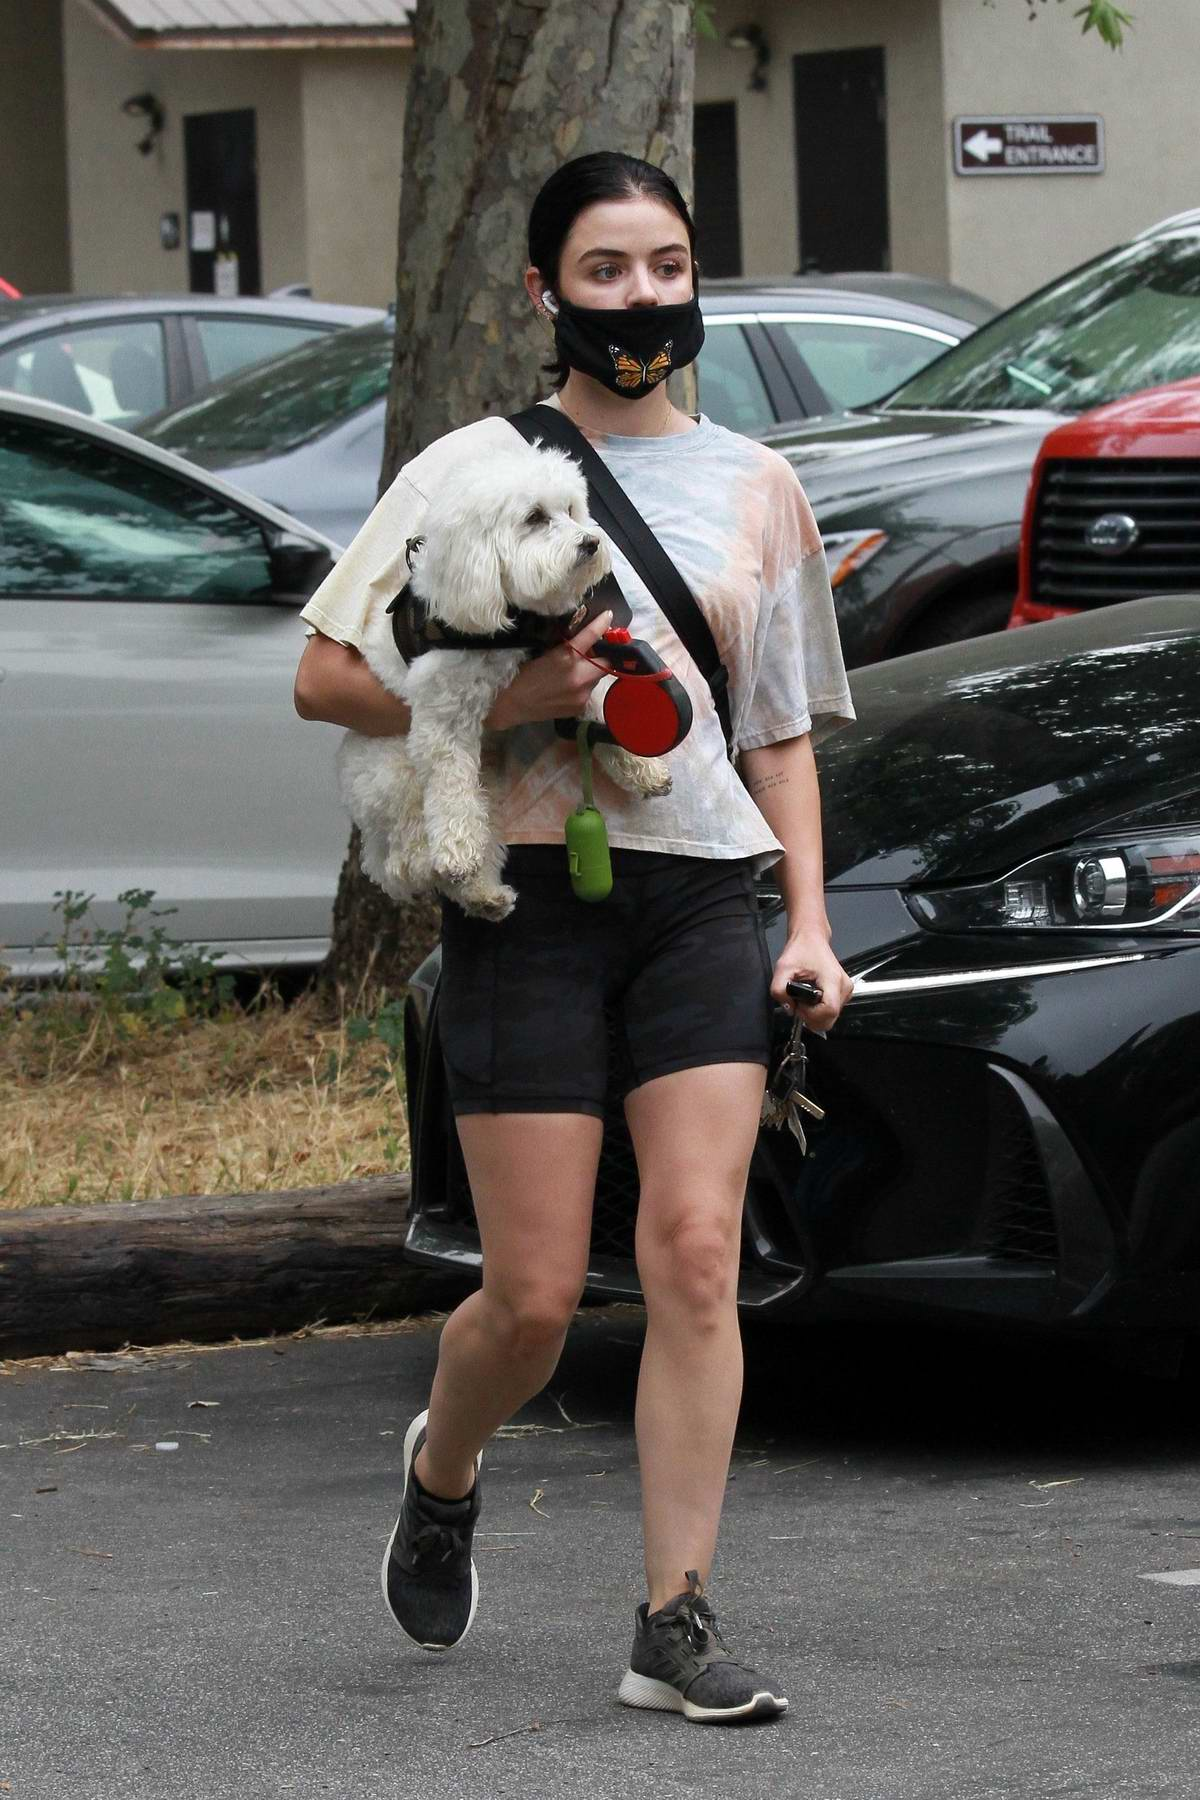 Lucy Hale puts on a leggy display in camo shorts paired with a tie-dye tee while out for a hike with her dog in Los Angeles